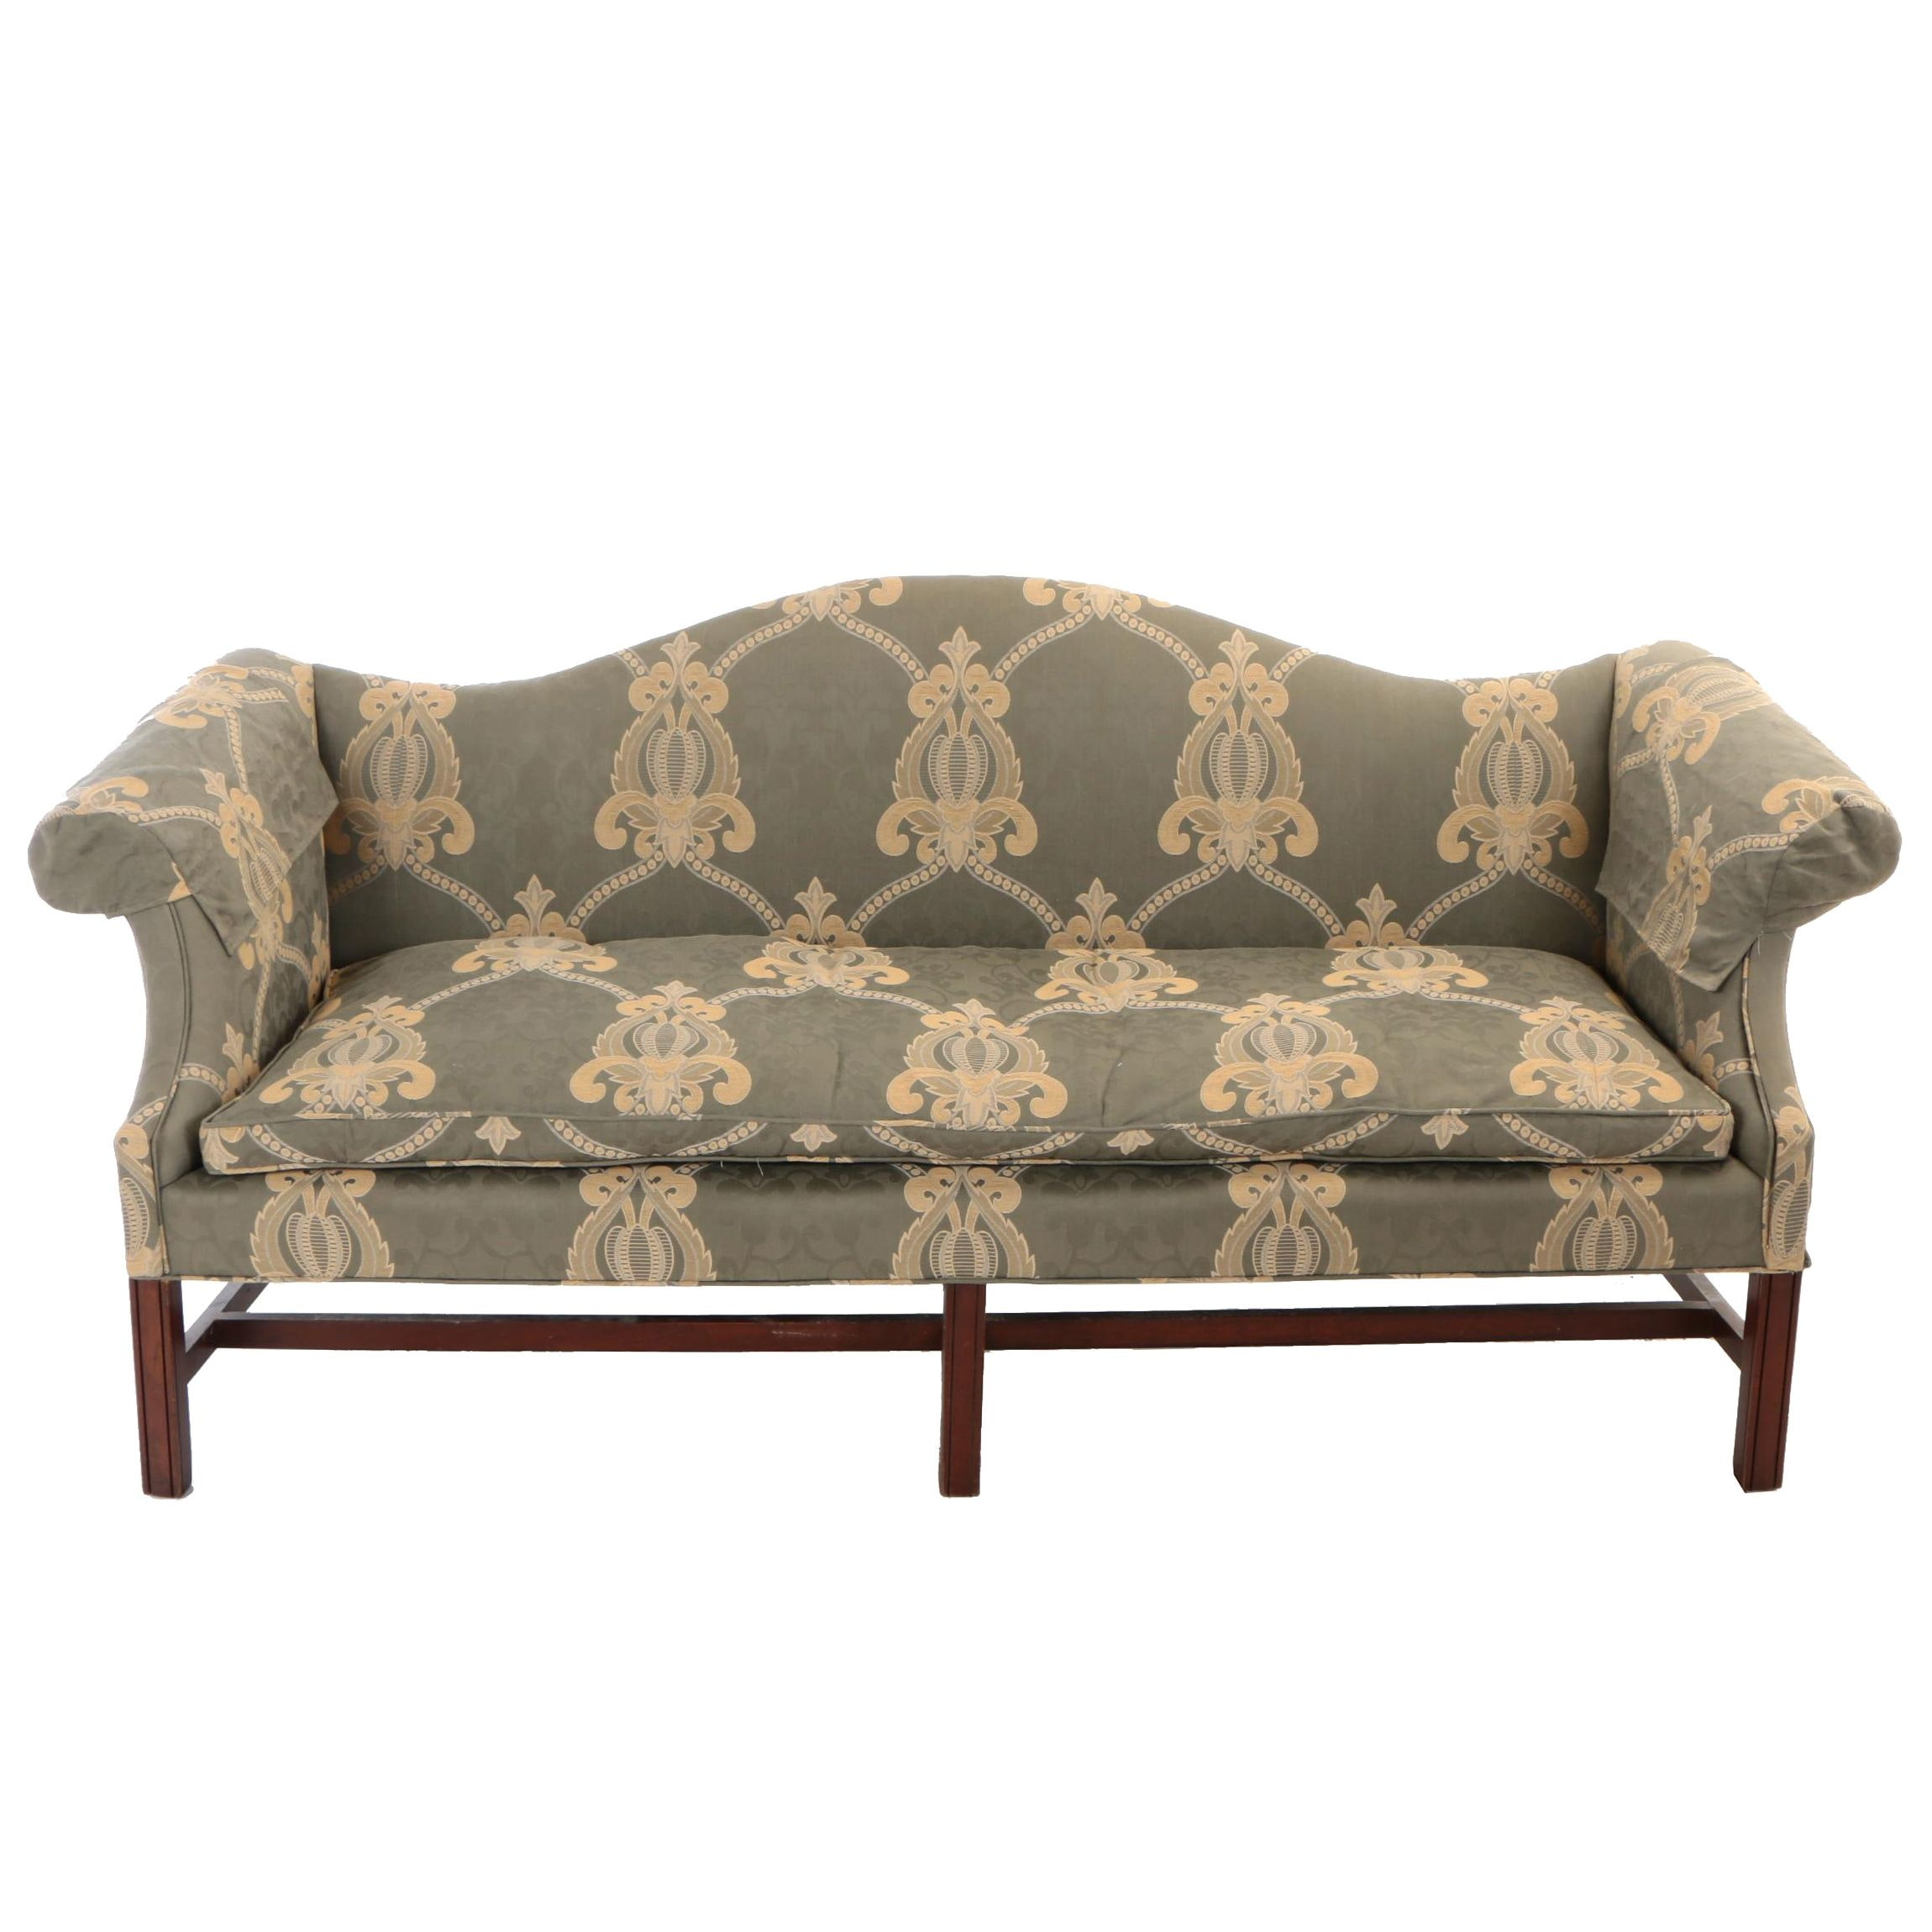 Chippendale Style Mahogany-Stained and Custom-Upholstered Sofa, 20th Century